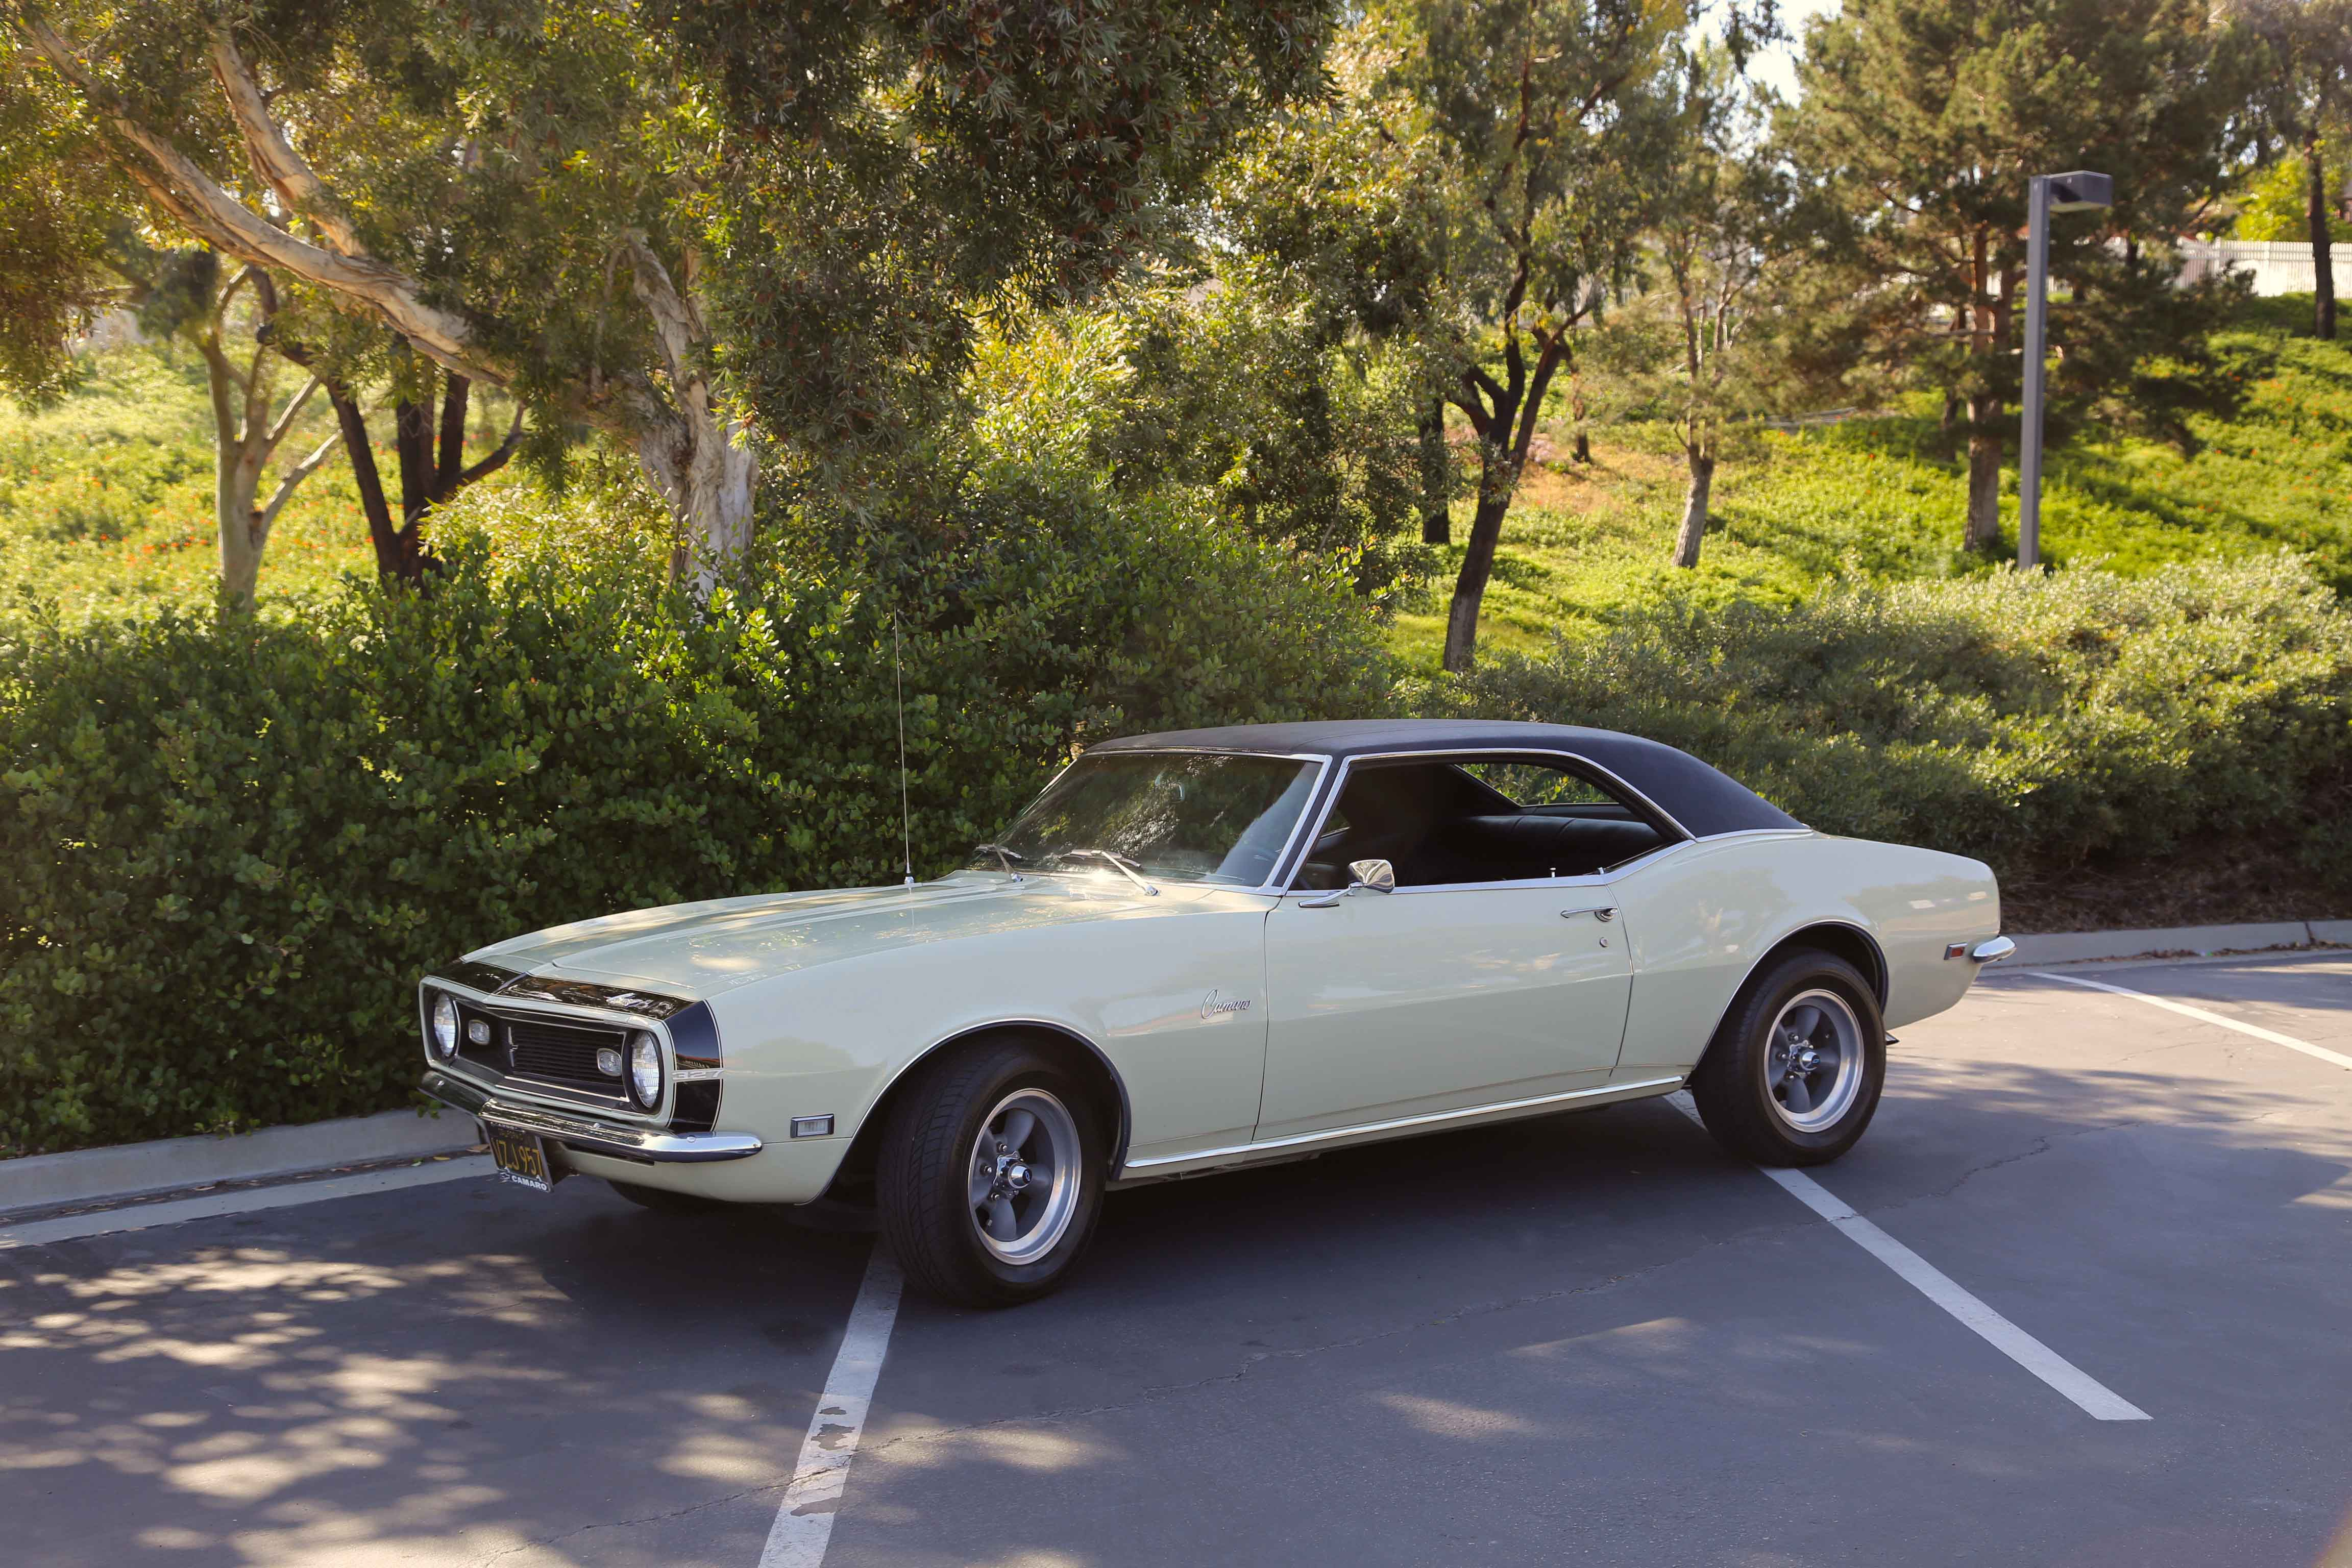 """Norm's 1968 Camaro is a base Sport Coupe with some unusual options such as the tilt wheel, bench """"Strato-Back"""" seat, and bumblebee stripe. It's a mystery why the odd assortment of extras were installed."""